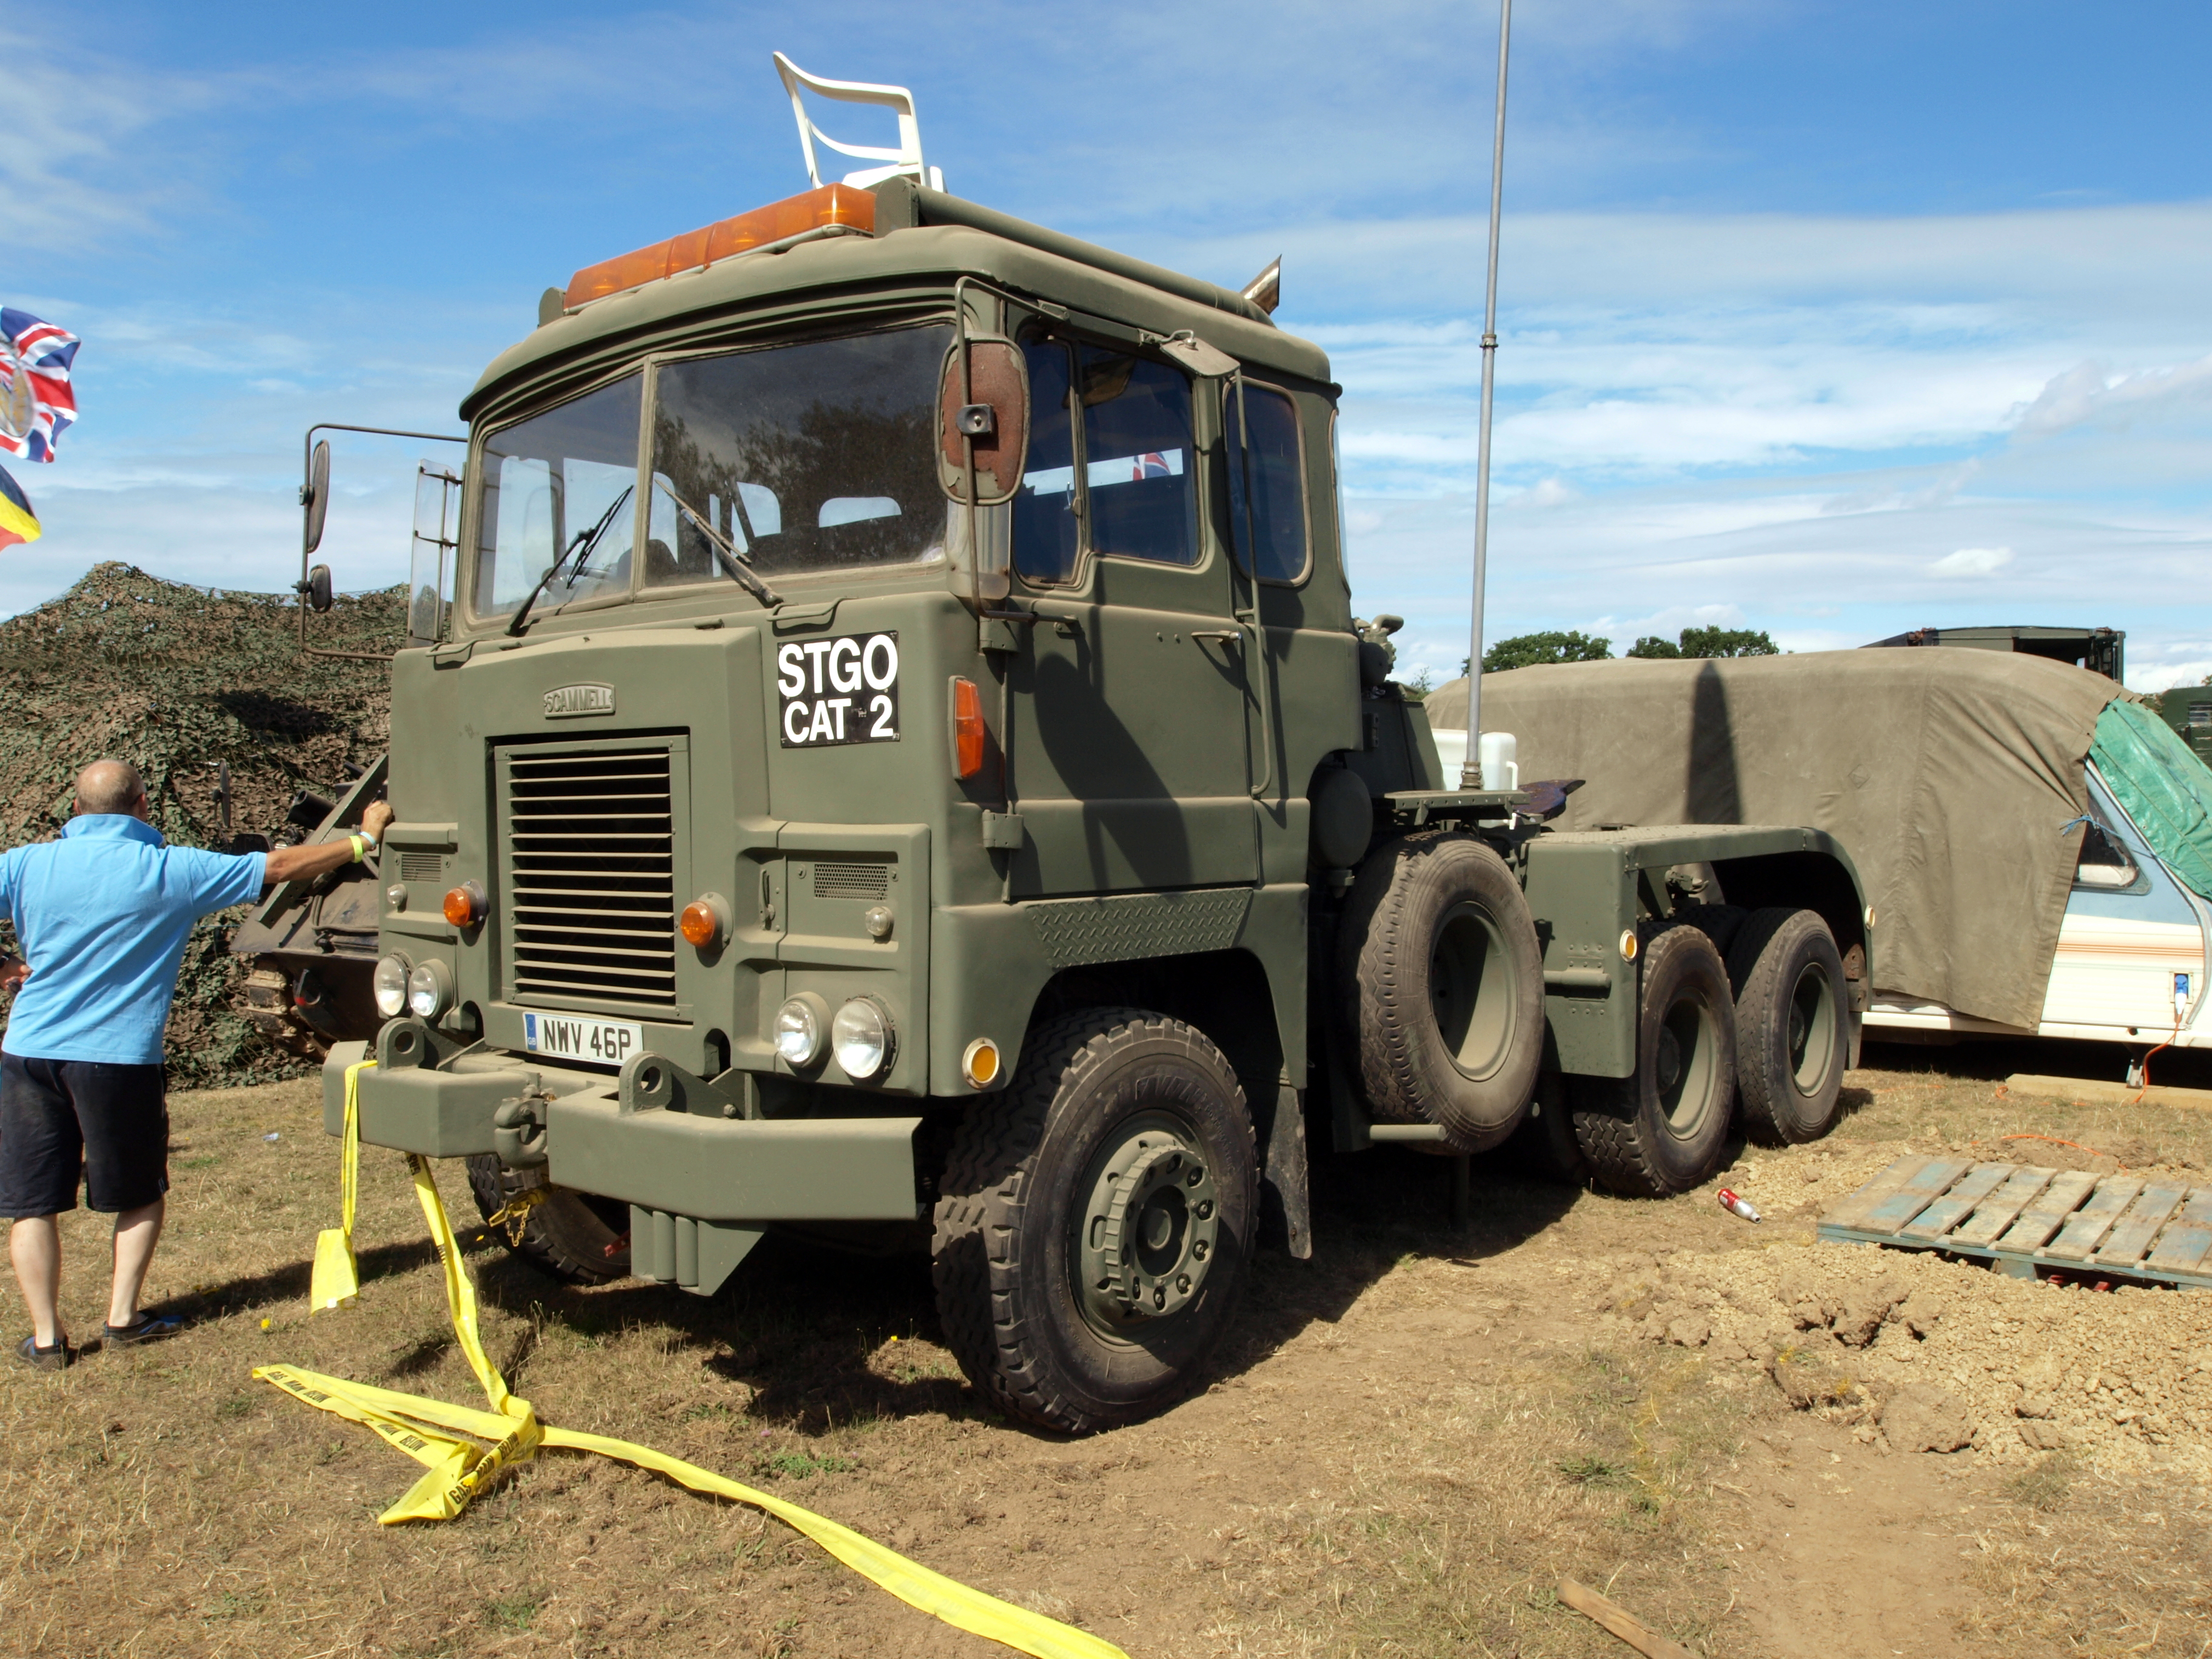 Scammell crusader photo - 5